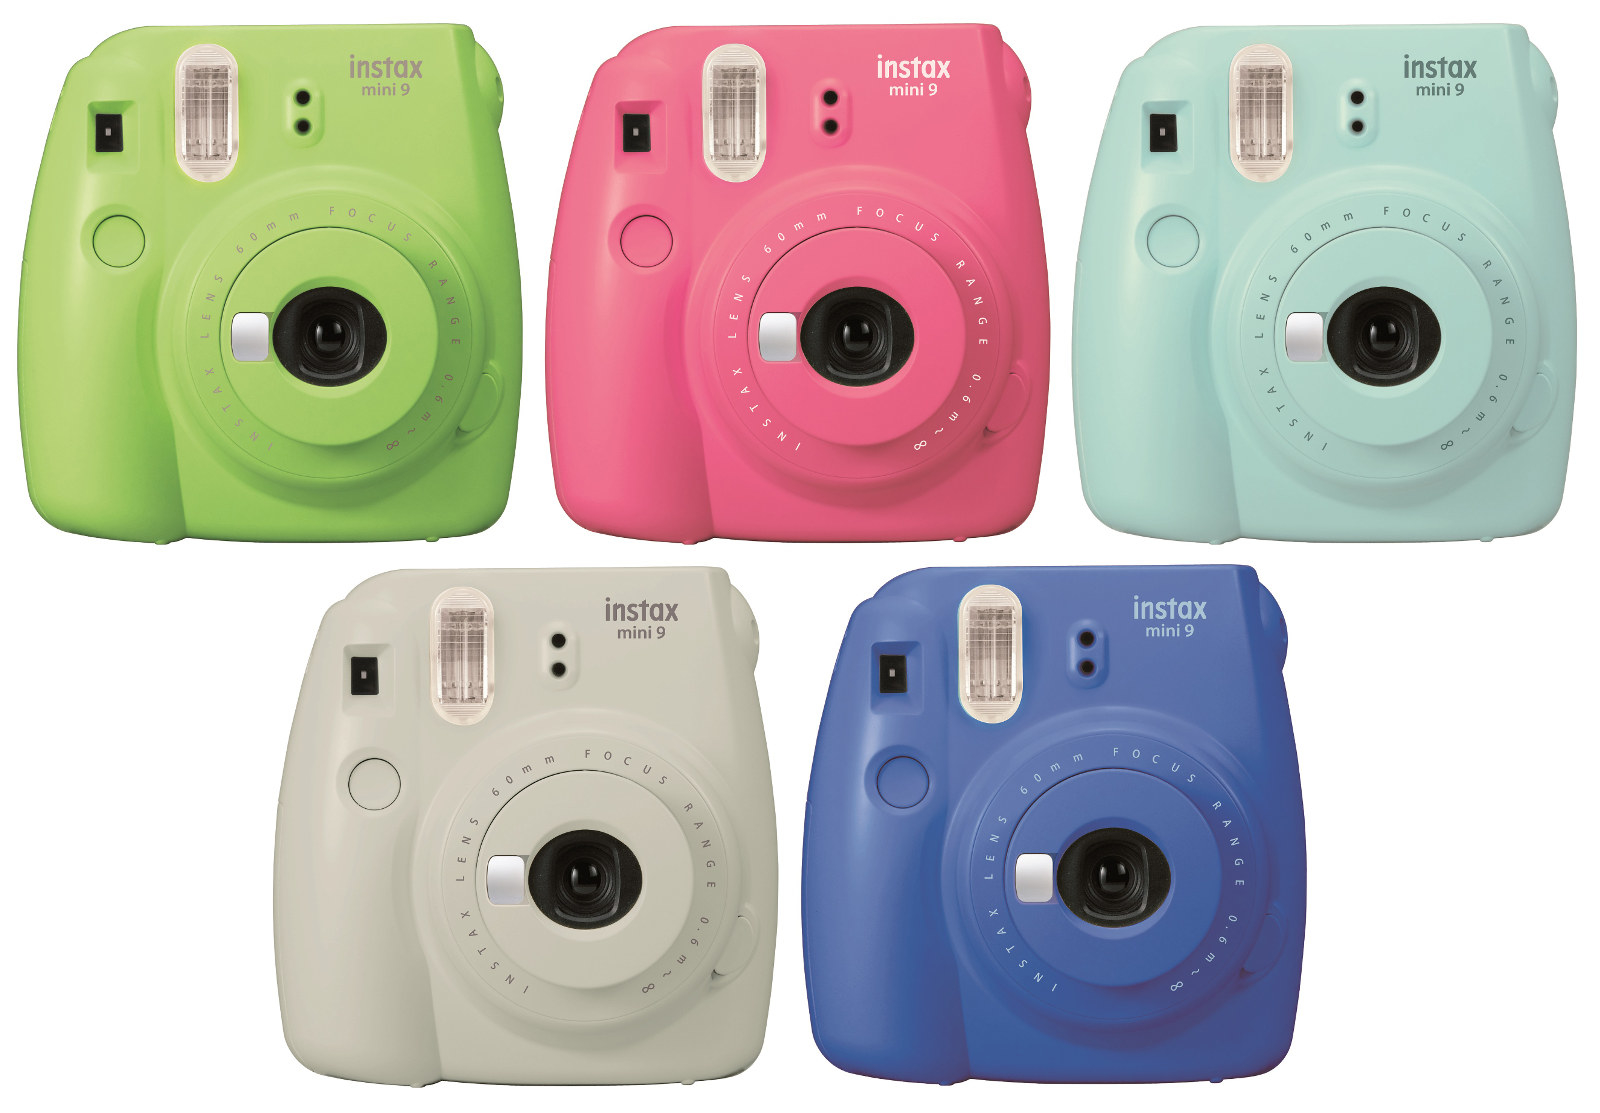 Fujifilm Announced That The Camera Will Be Priced At 70 USD And Is Set To Release In April Except For Cobalt Blue Smoky White Colorways